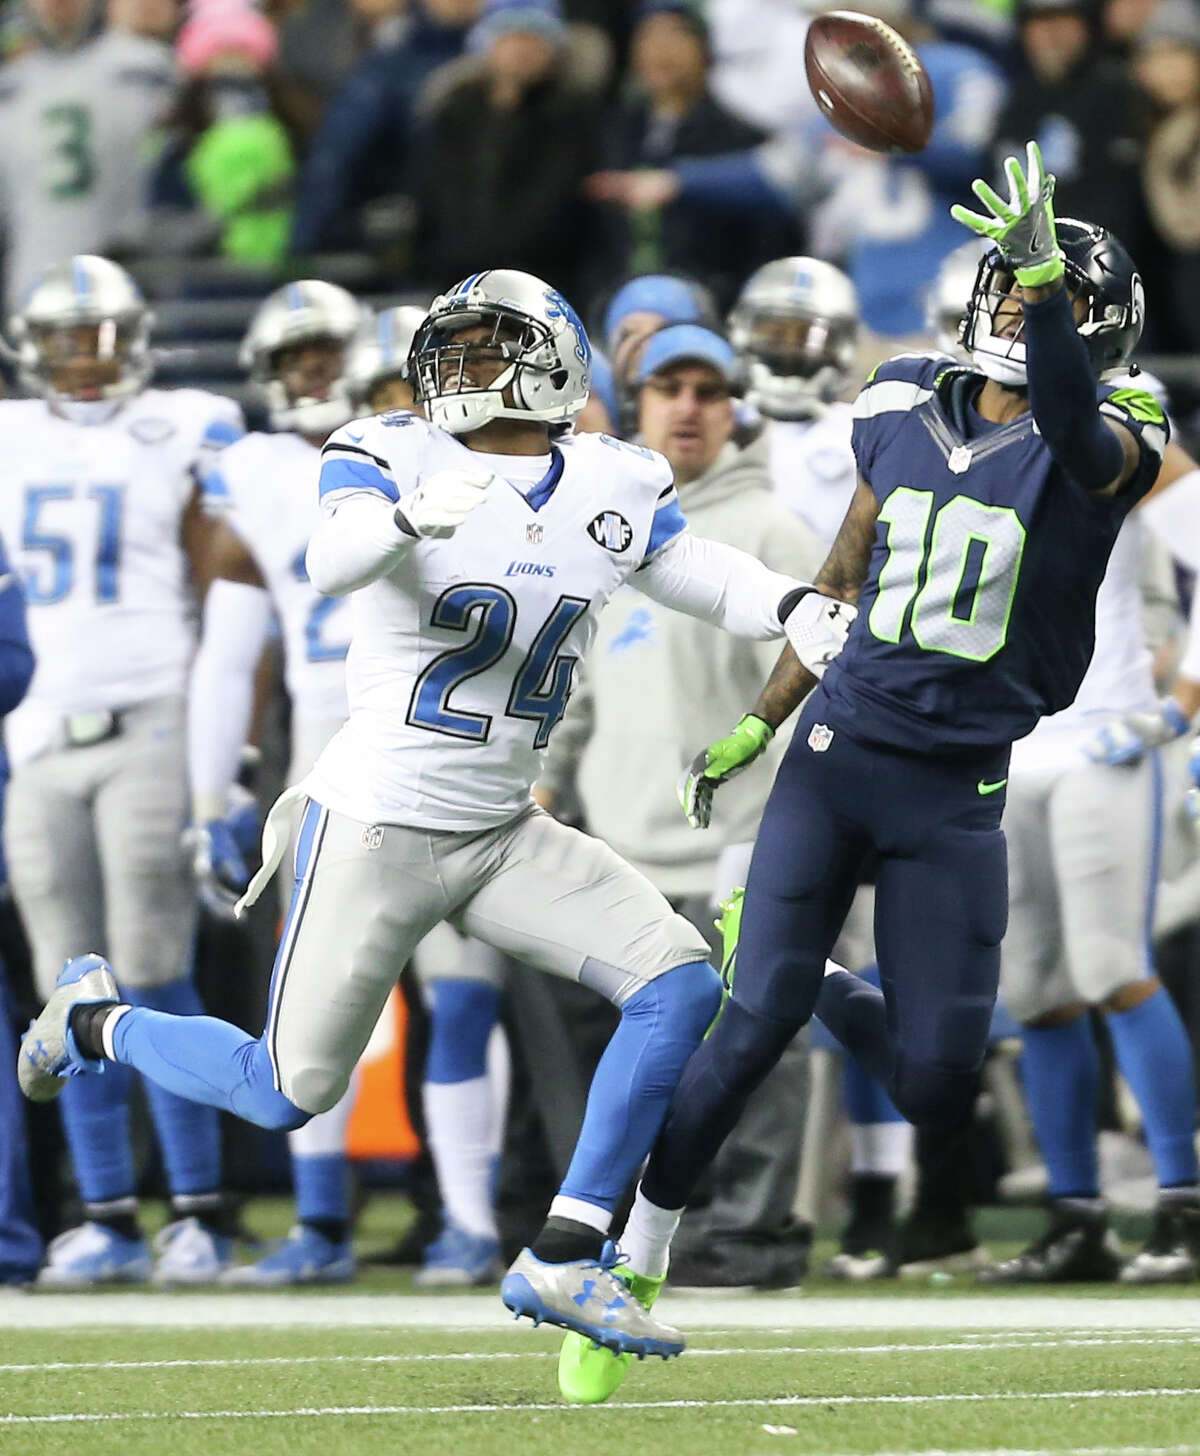 Seahawks wide receiver Paul Richardson makes a one-handed catch while being guarded by Lions corner back Nevin Lawson during the second half of a wild card playoff game at CenturyLink Field on Saturday, Jan. 7, 2017.